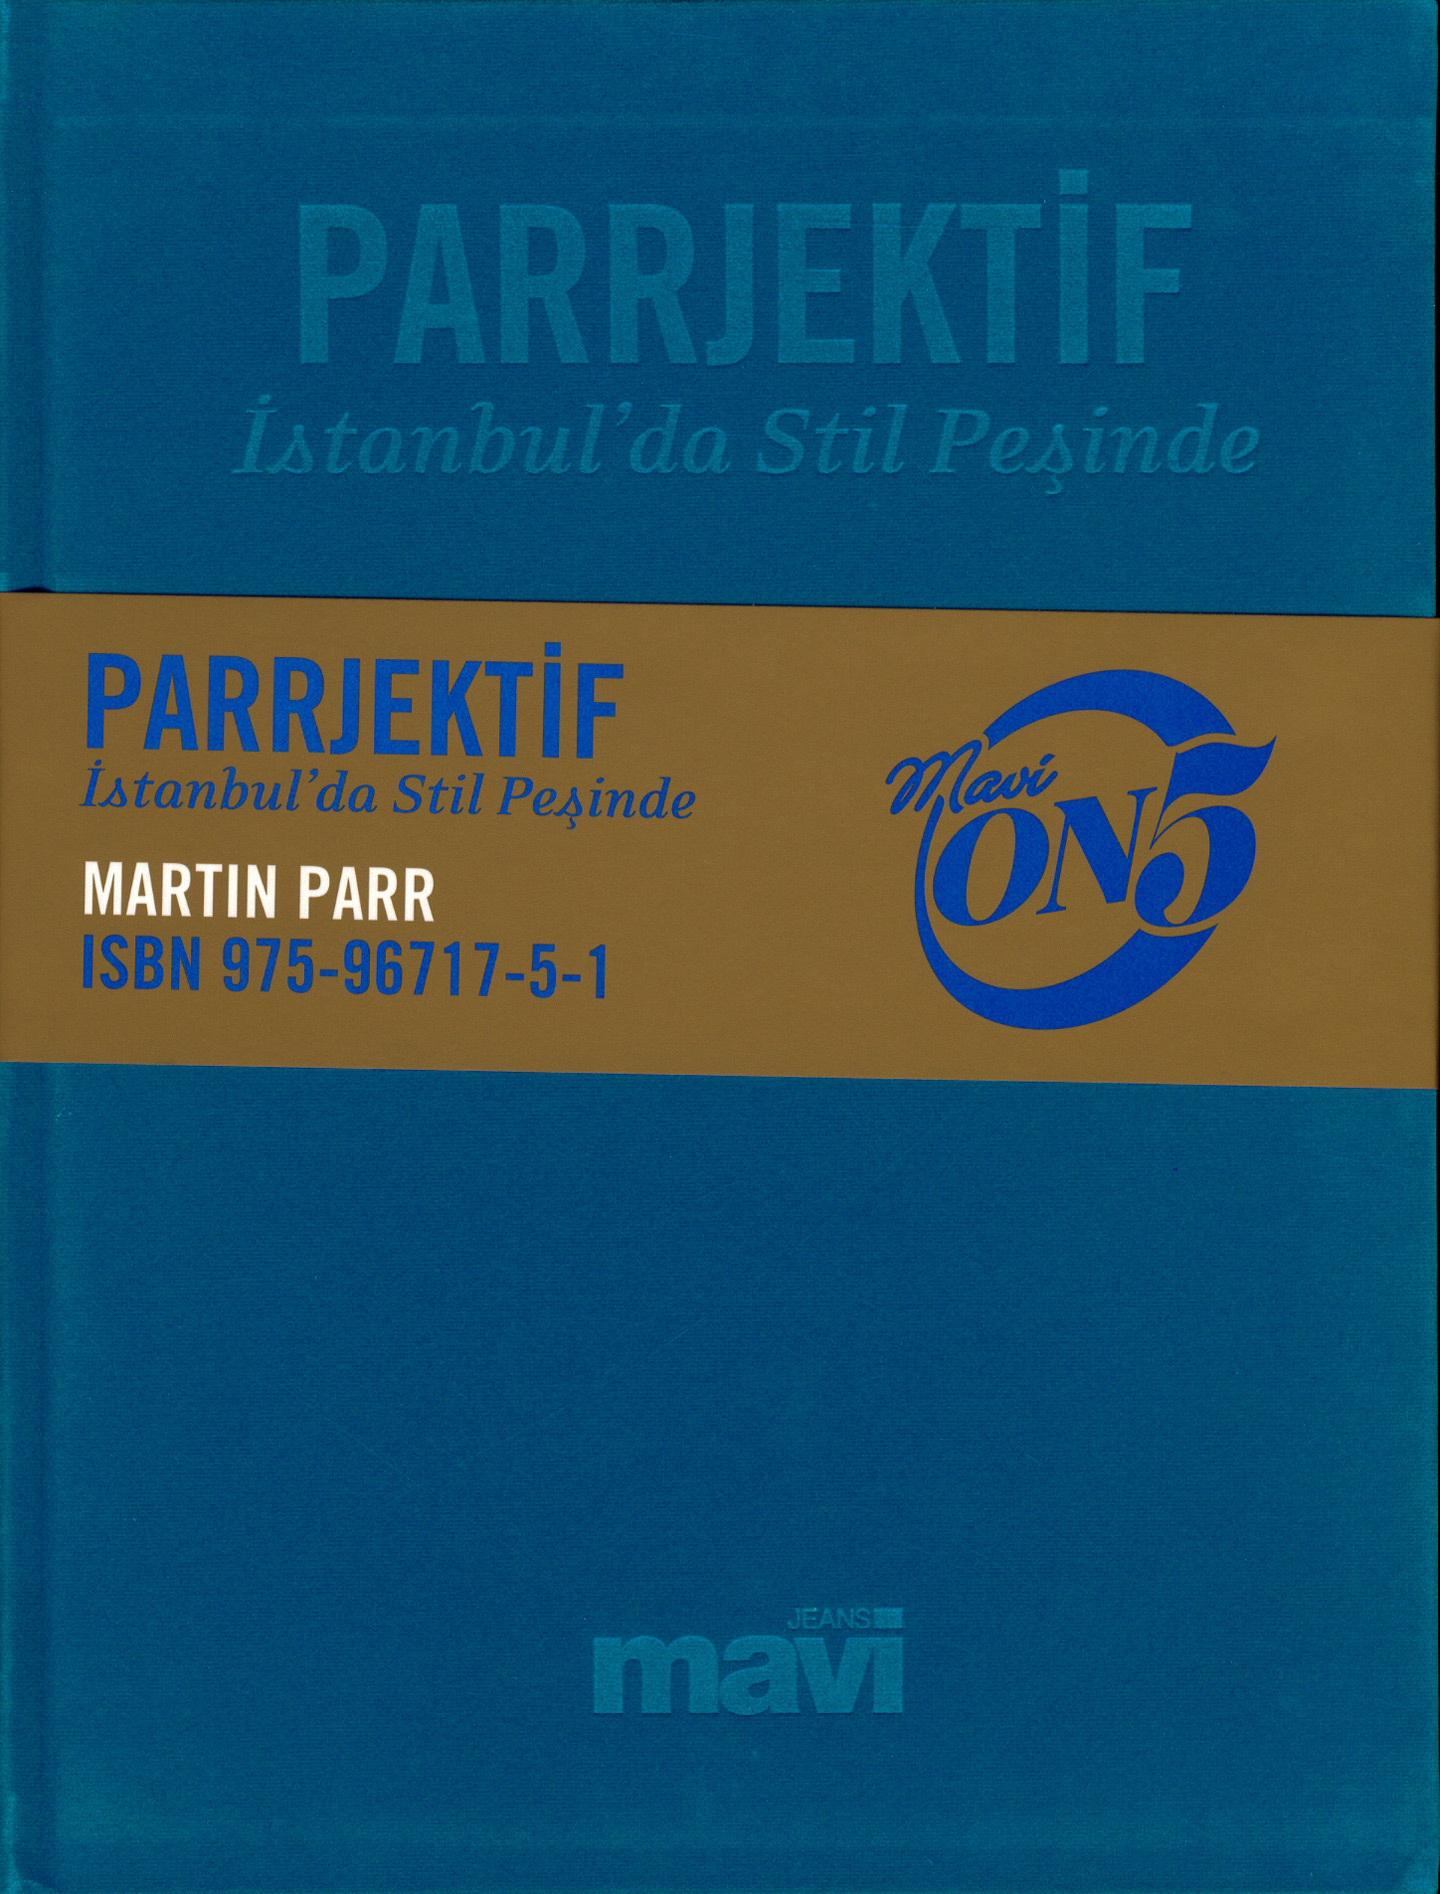 Martin Parr: A Collection of 33 Books and Catalogues [All Titles SIGNED or SIGNED ASSOCIATION COPIES; Some Titles Limited Editions]